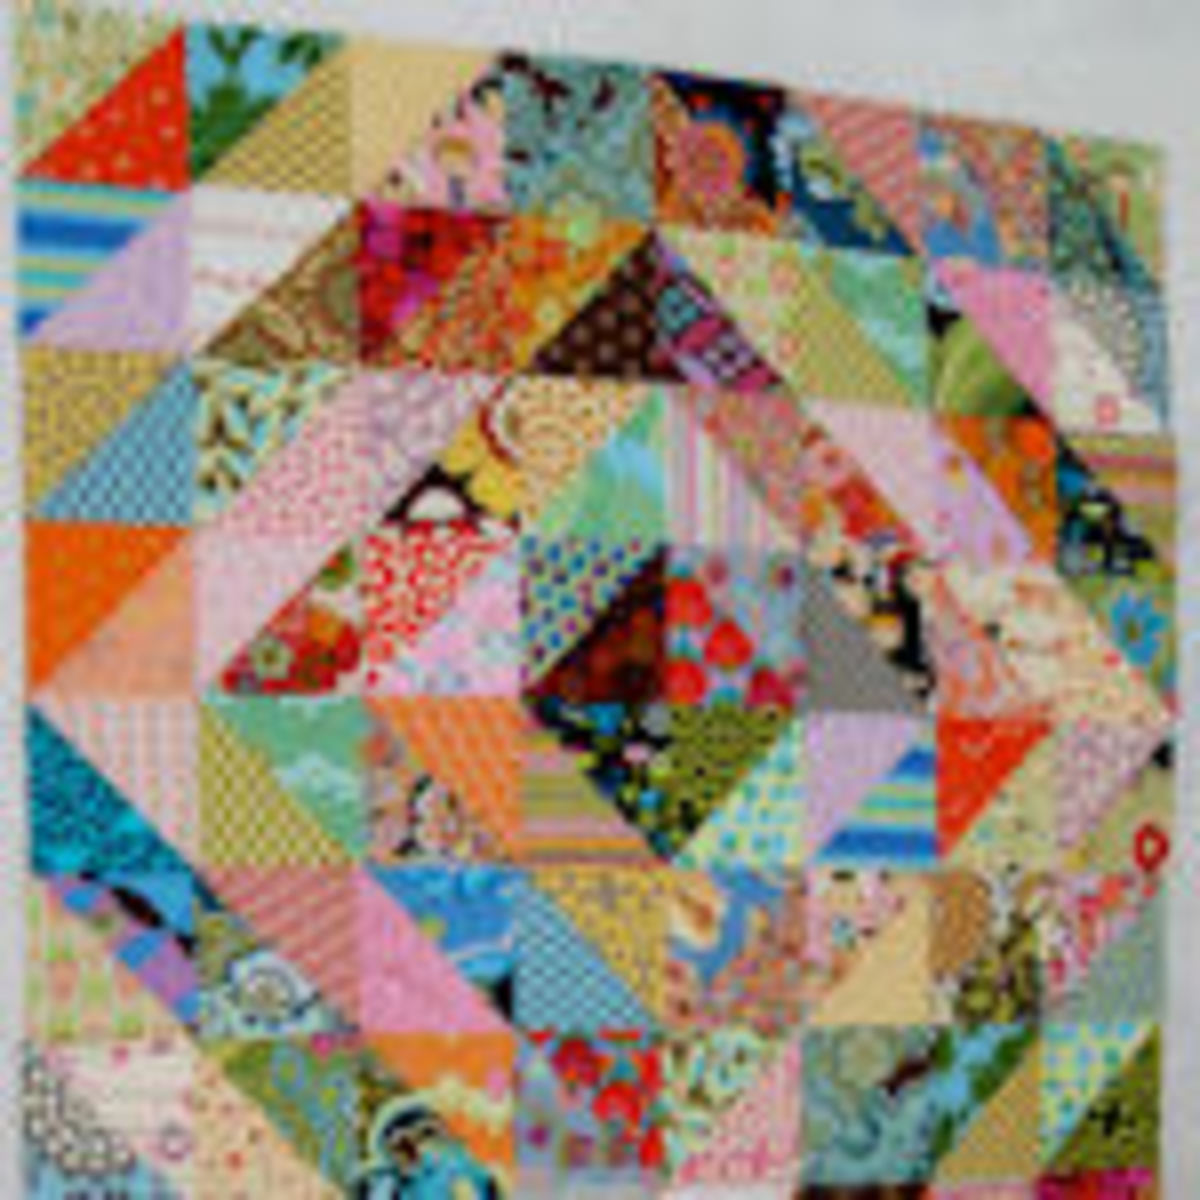 Fat Quarter Quilt Using Free Easy Patterns Hubpages